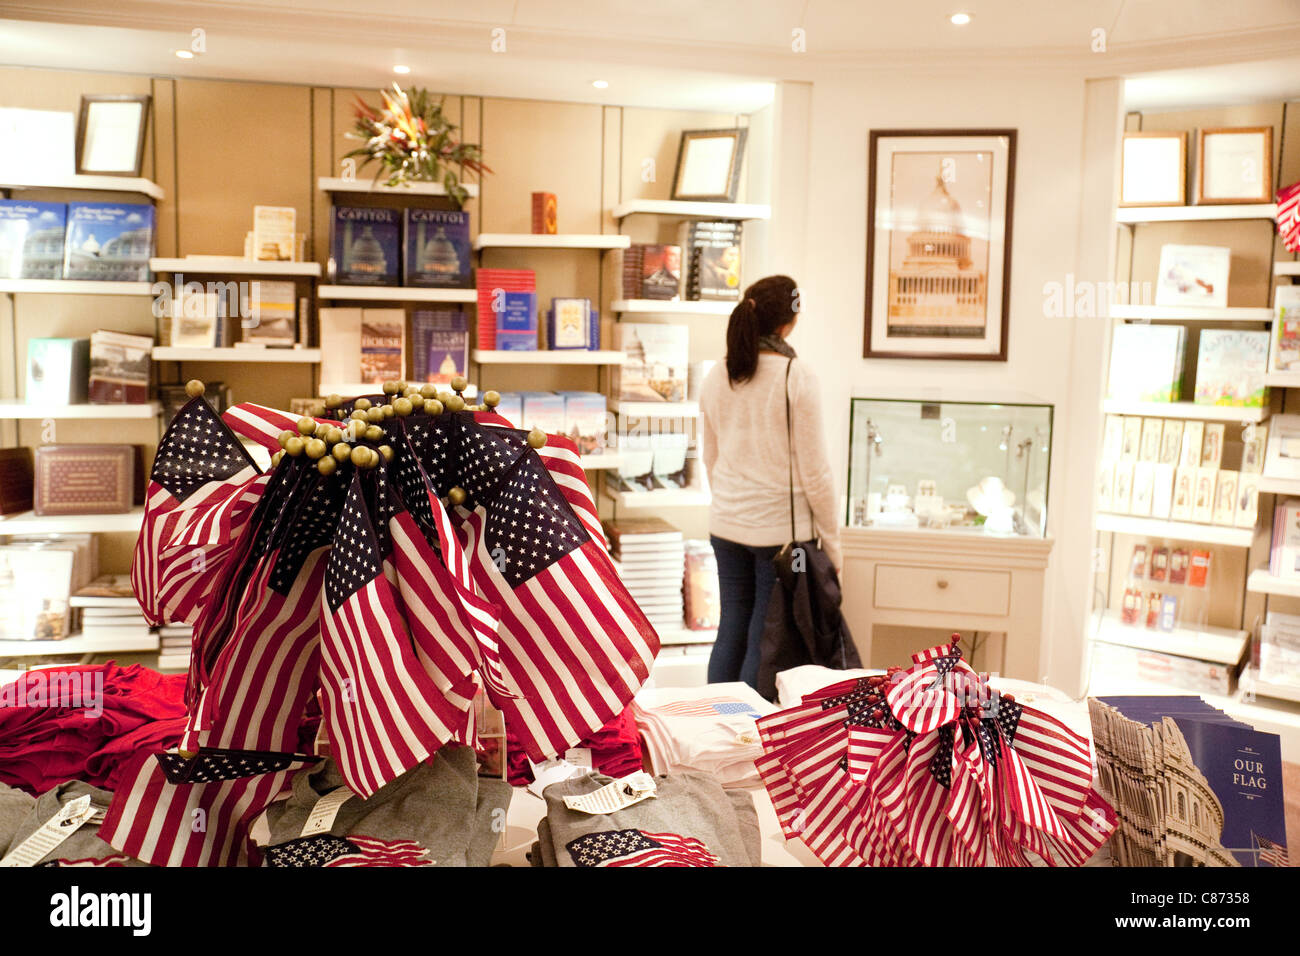 Tourist in the Capitol visitor center shop, Washington DC USA - Stock Image